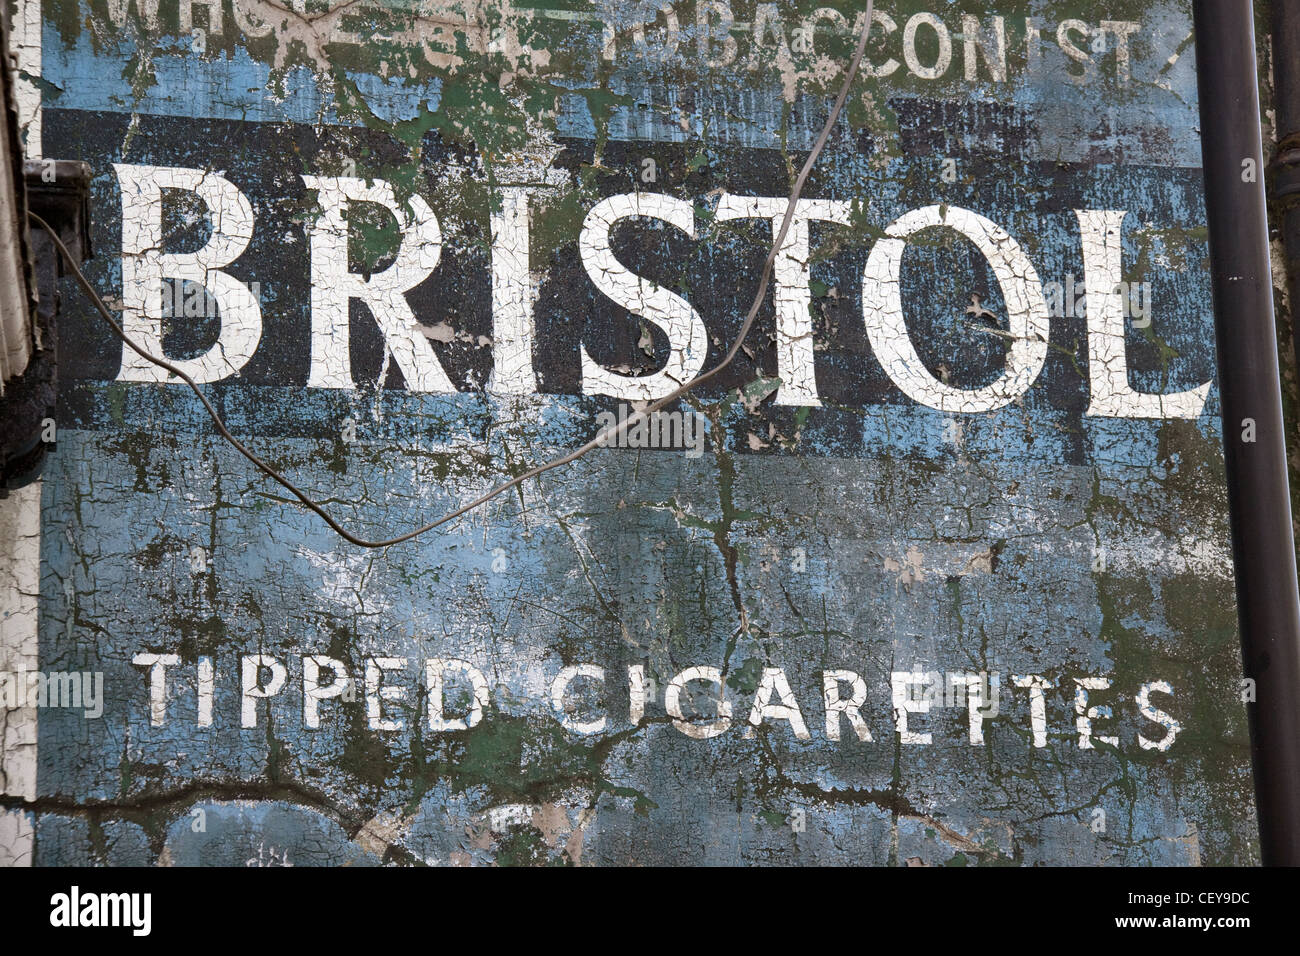 Bristol Tipped Cigarettes wall historic advertisement from Witton Street, Northwich, Cheshire West and Chester , - Stock Image